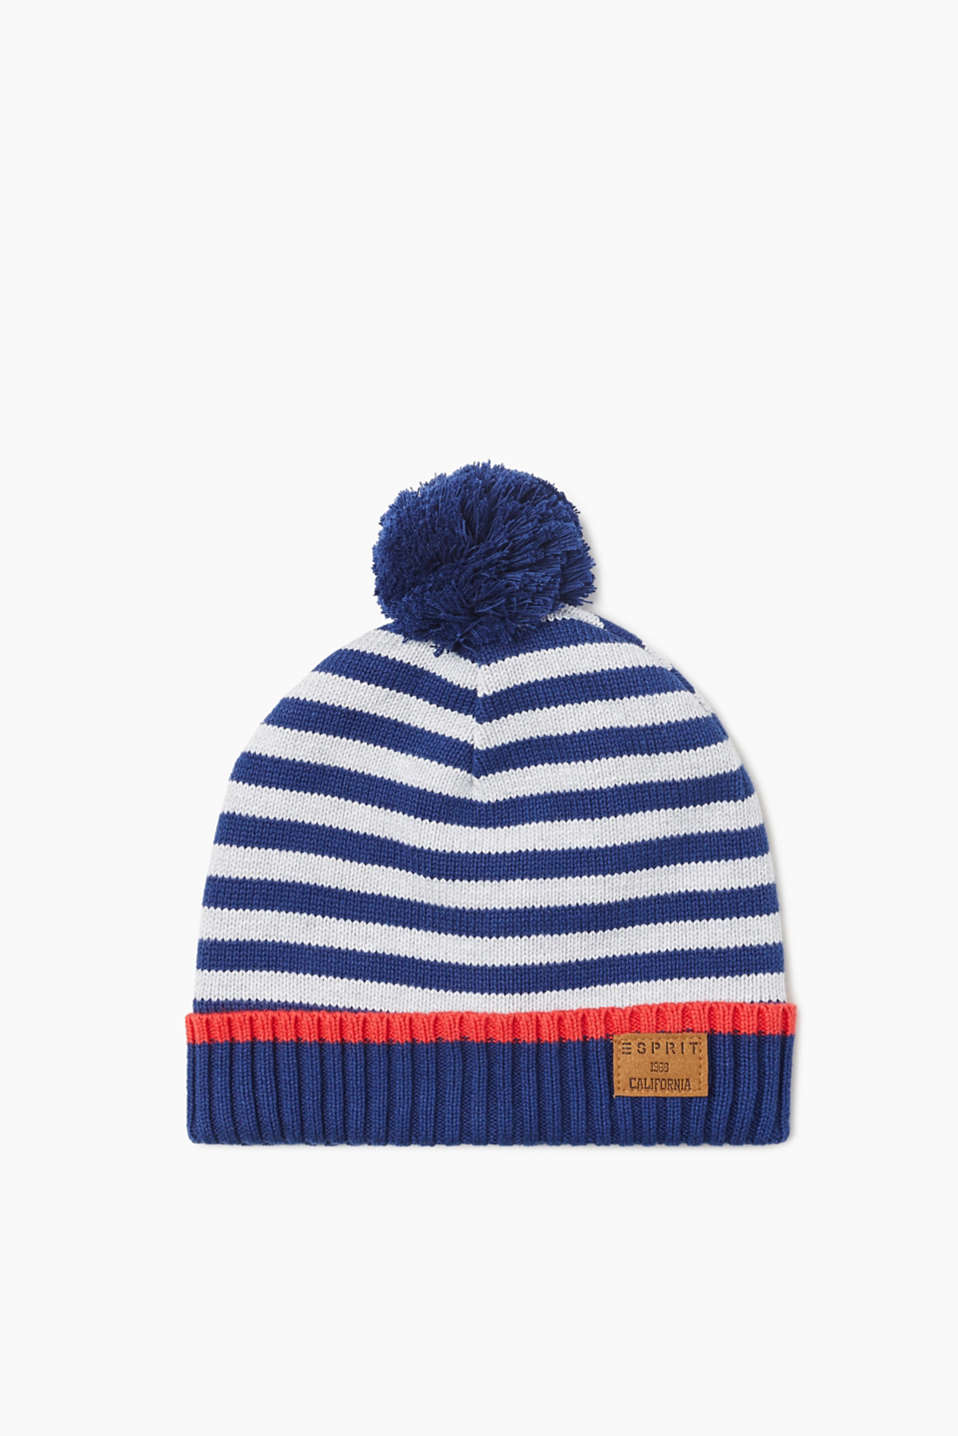 Protects against the cold with an exciting look: striped pompom hat in cotton with soft fleece lining.